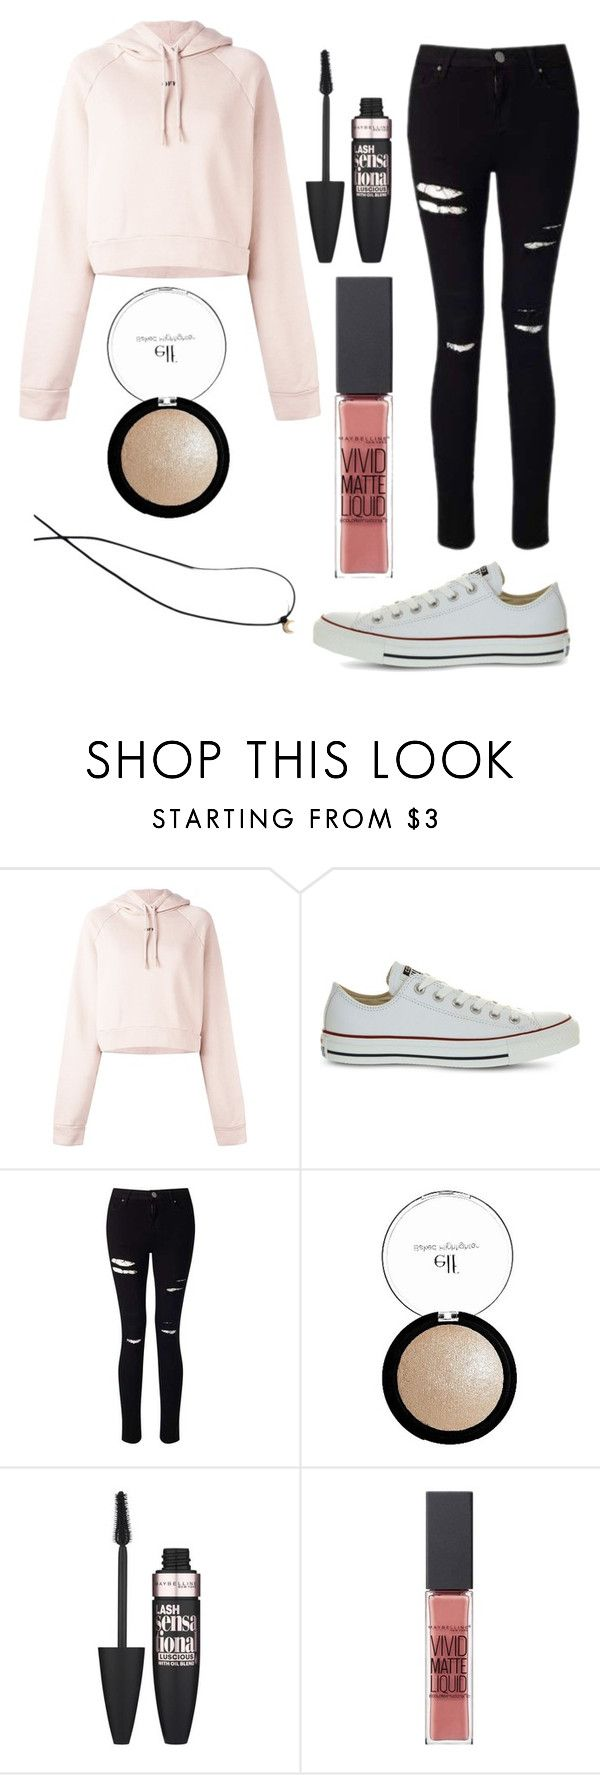 """Outfit #37"" by unicornicamitha on Polyvore featuring Off-White, Converse, Miss Selfridge, e.l.f., Maybelline and Madewell"